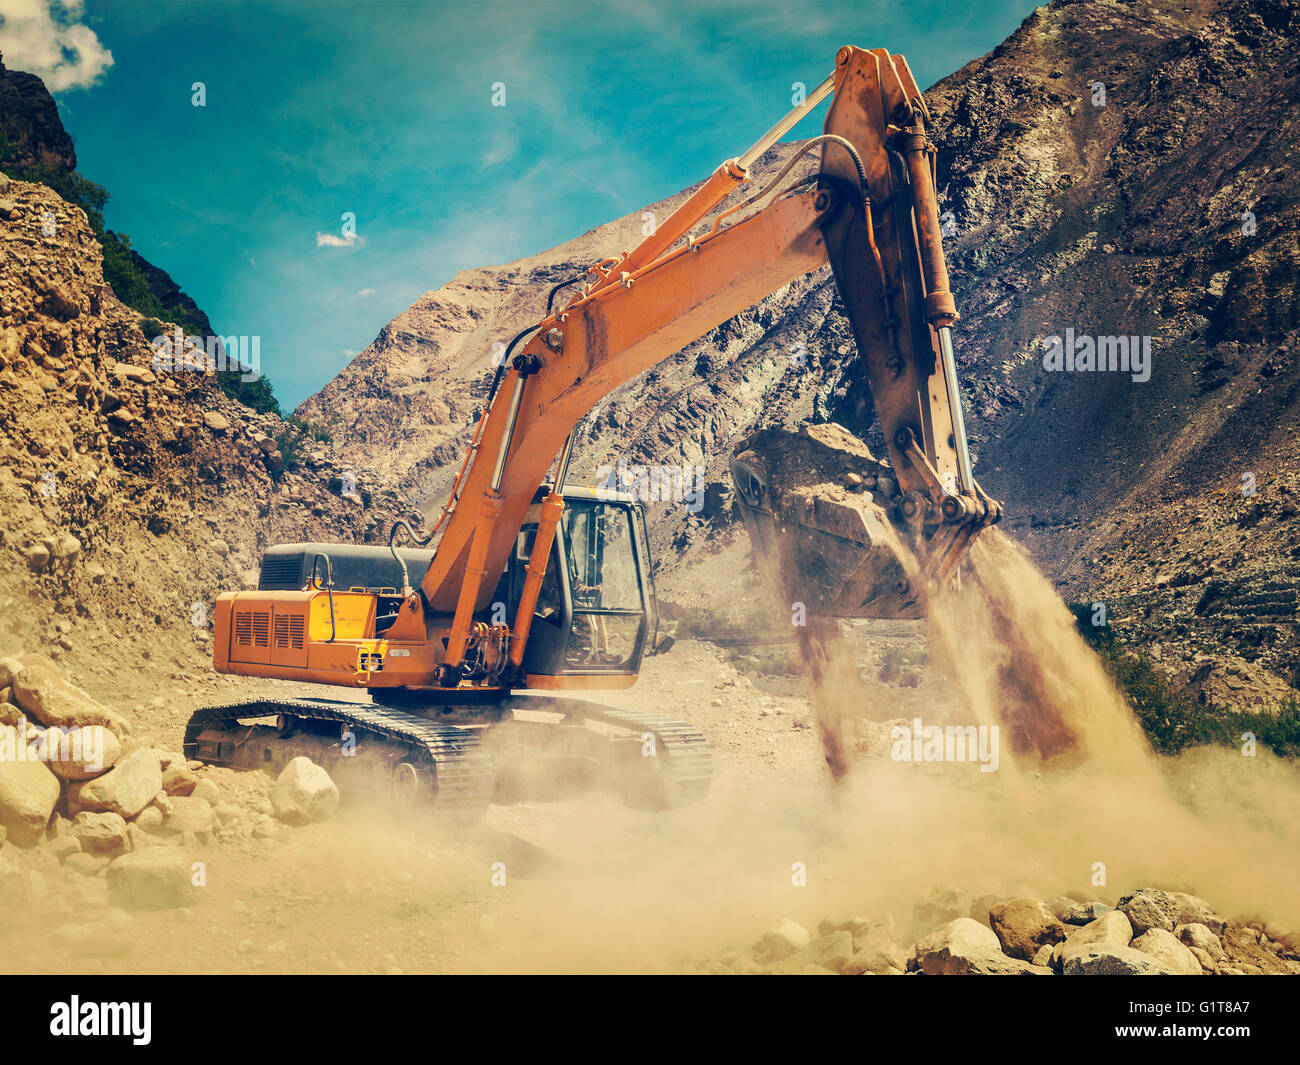 Road construction in Himalayas - Stock Image